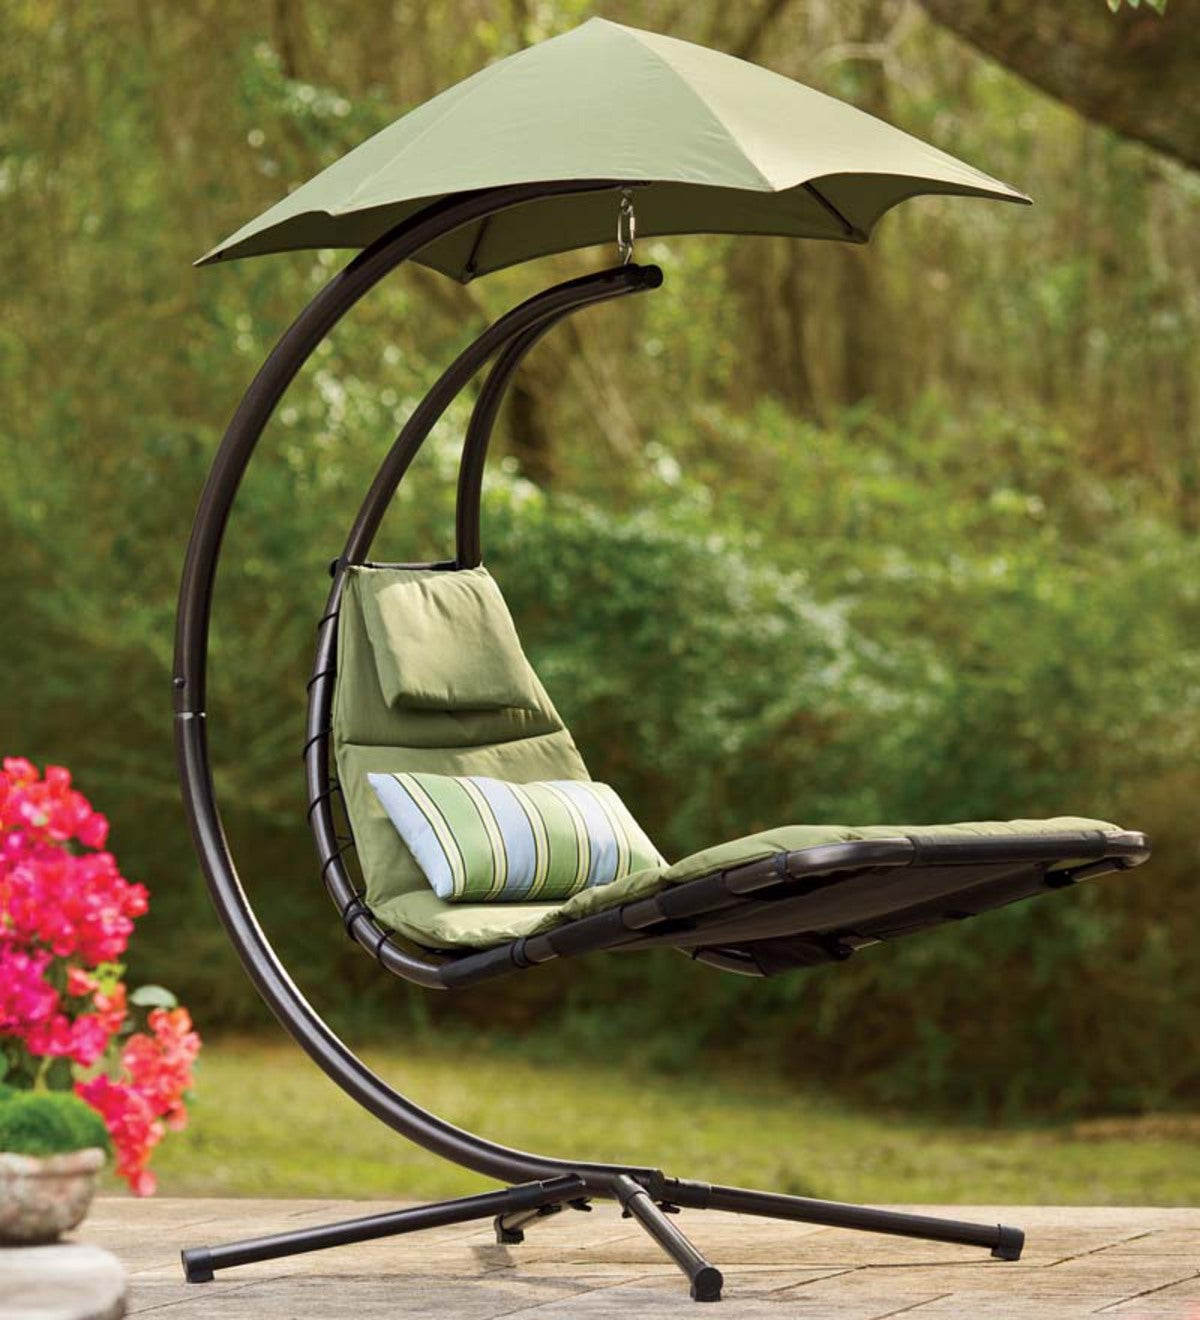 Dream Chair Suspended Lounge Chair With Umbrella Plowhearth